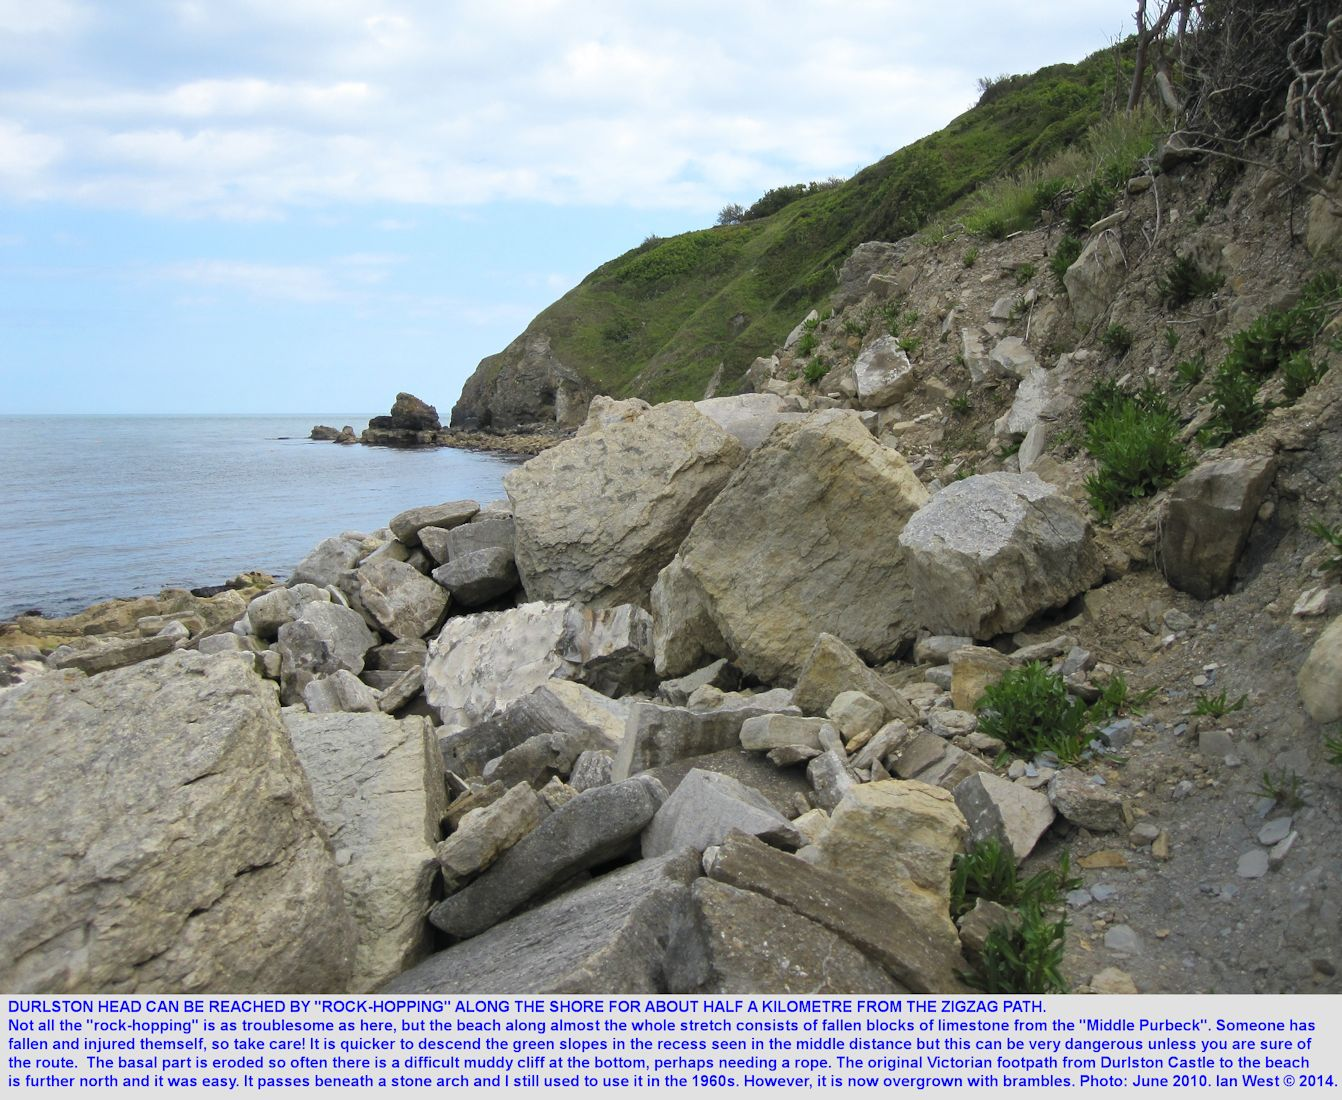 The approach to Durlston Head, Dorset, seen when rock-hopping along southern Durlston Bay towards it, June 2010